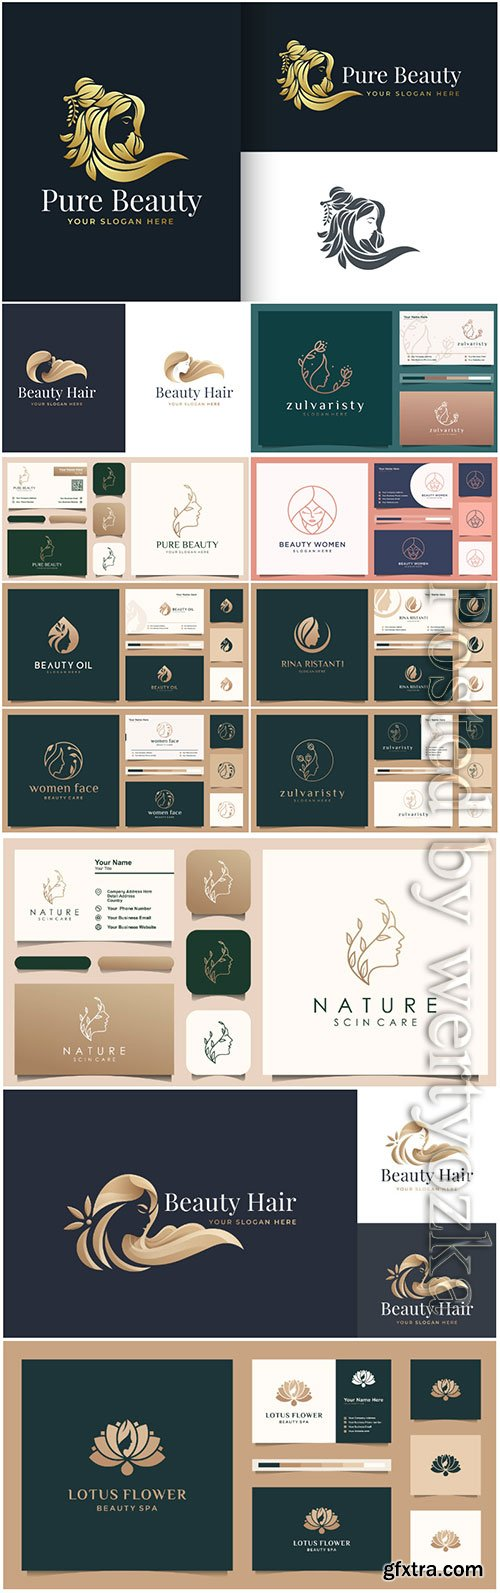 Luxury beauty woman hair salon gold gradient logo design